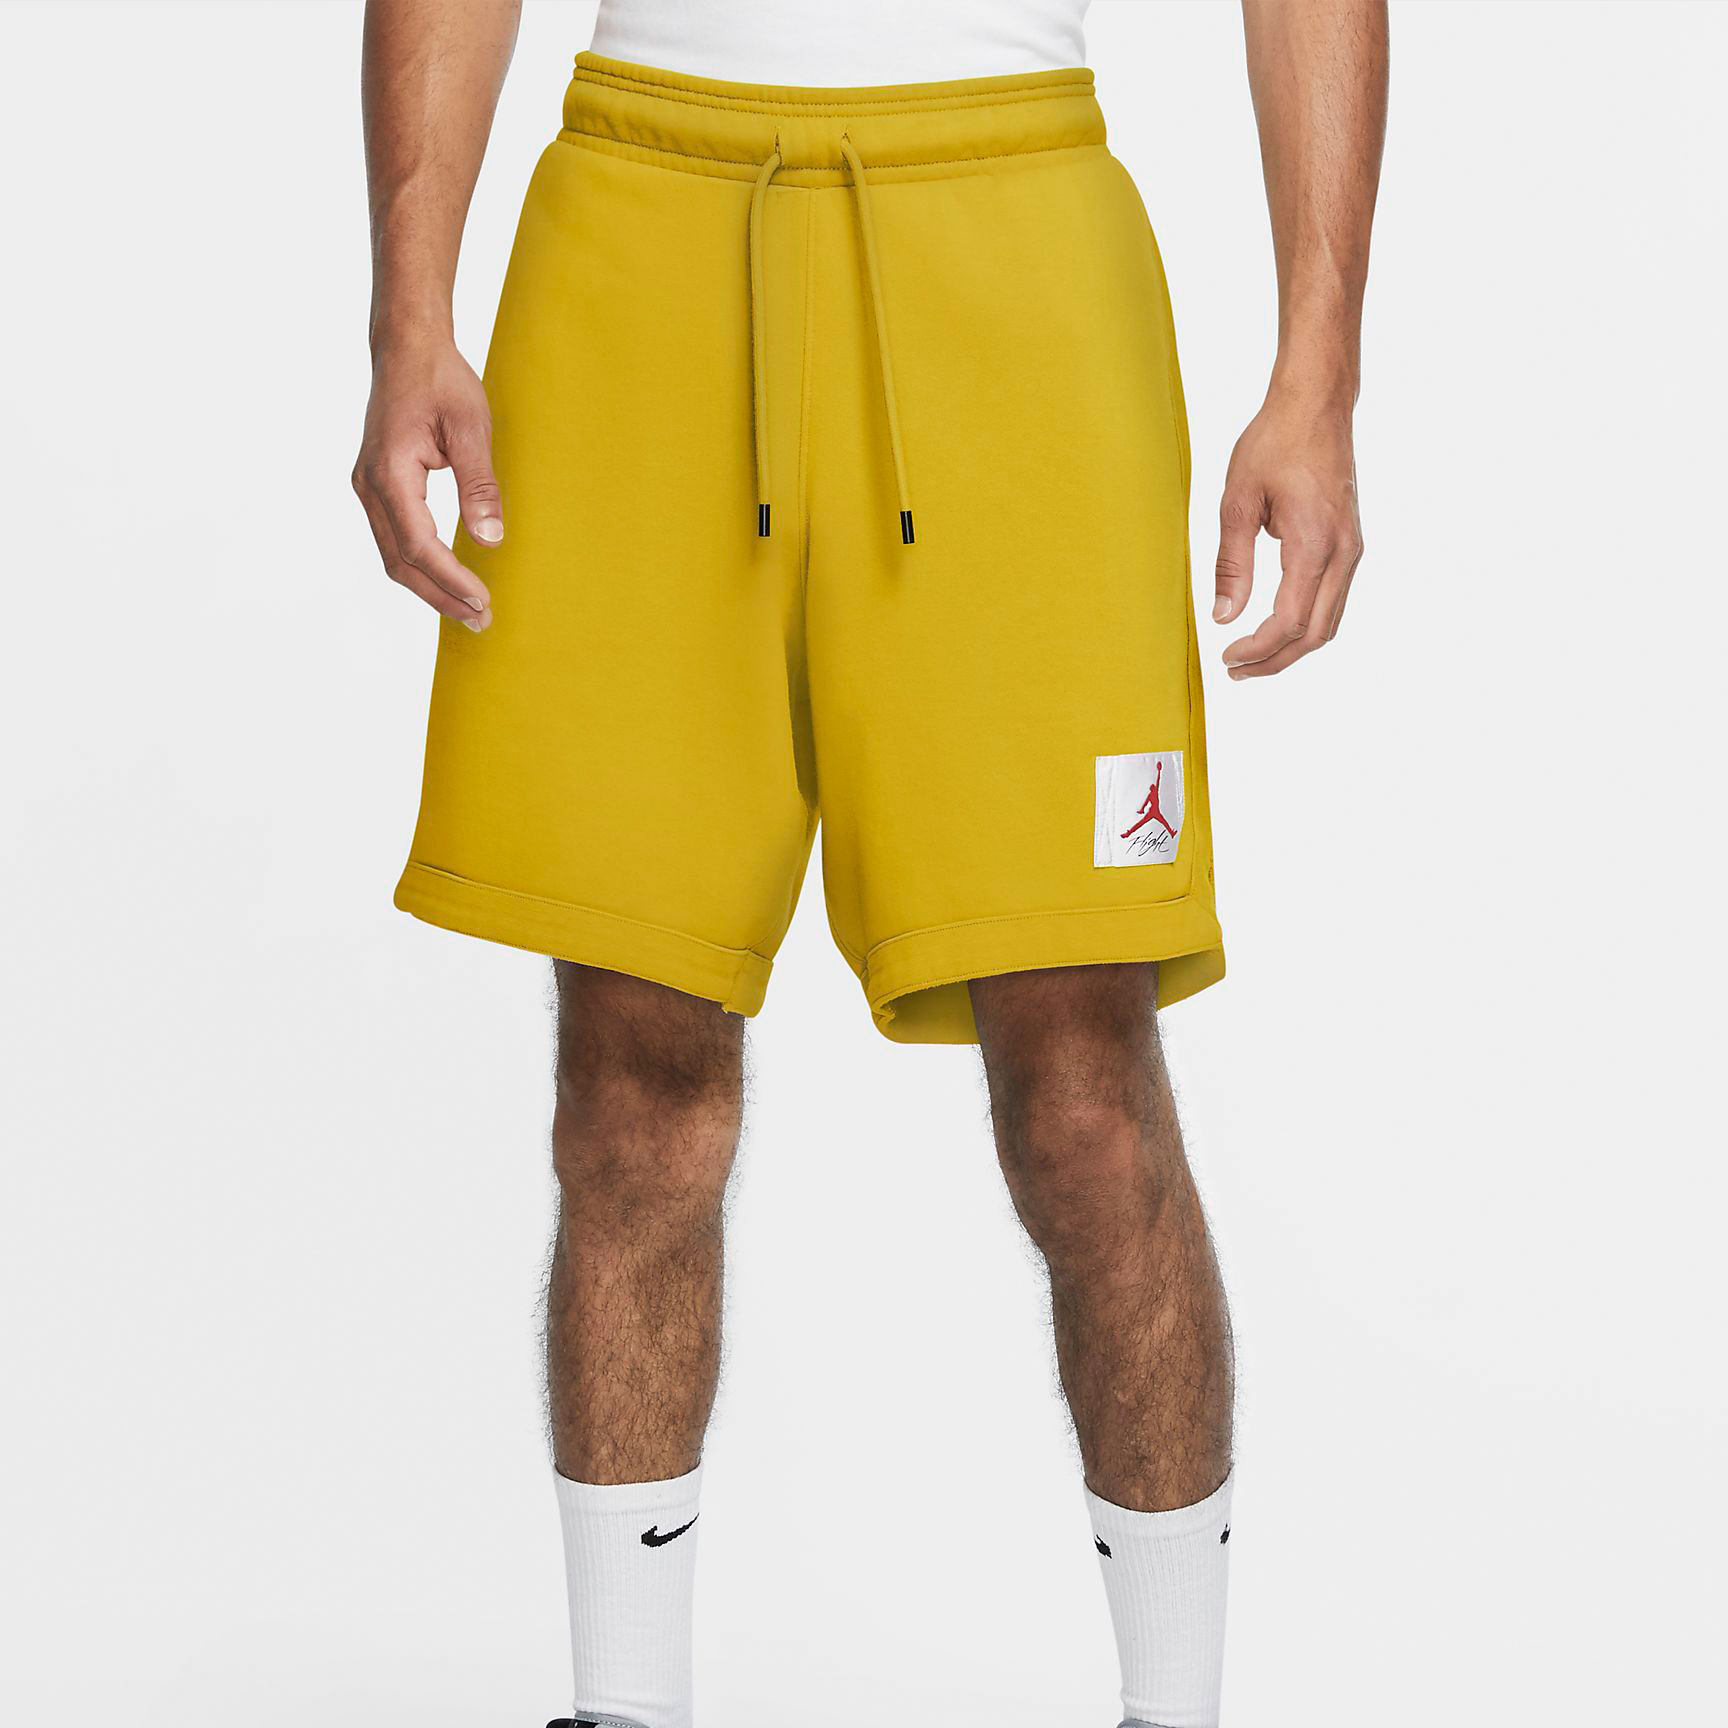 jordan-3-animal-instinct-2-yellow-shorts-match